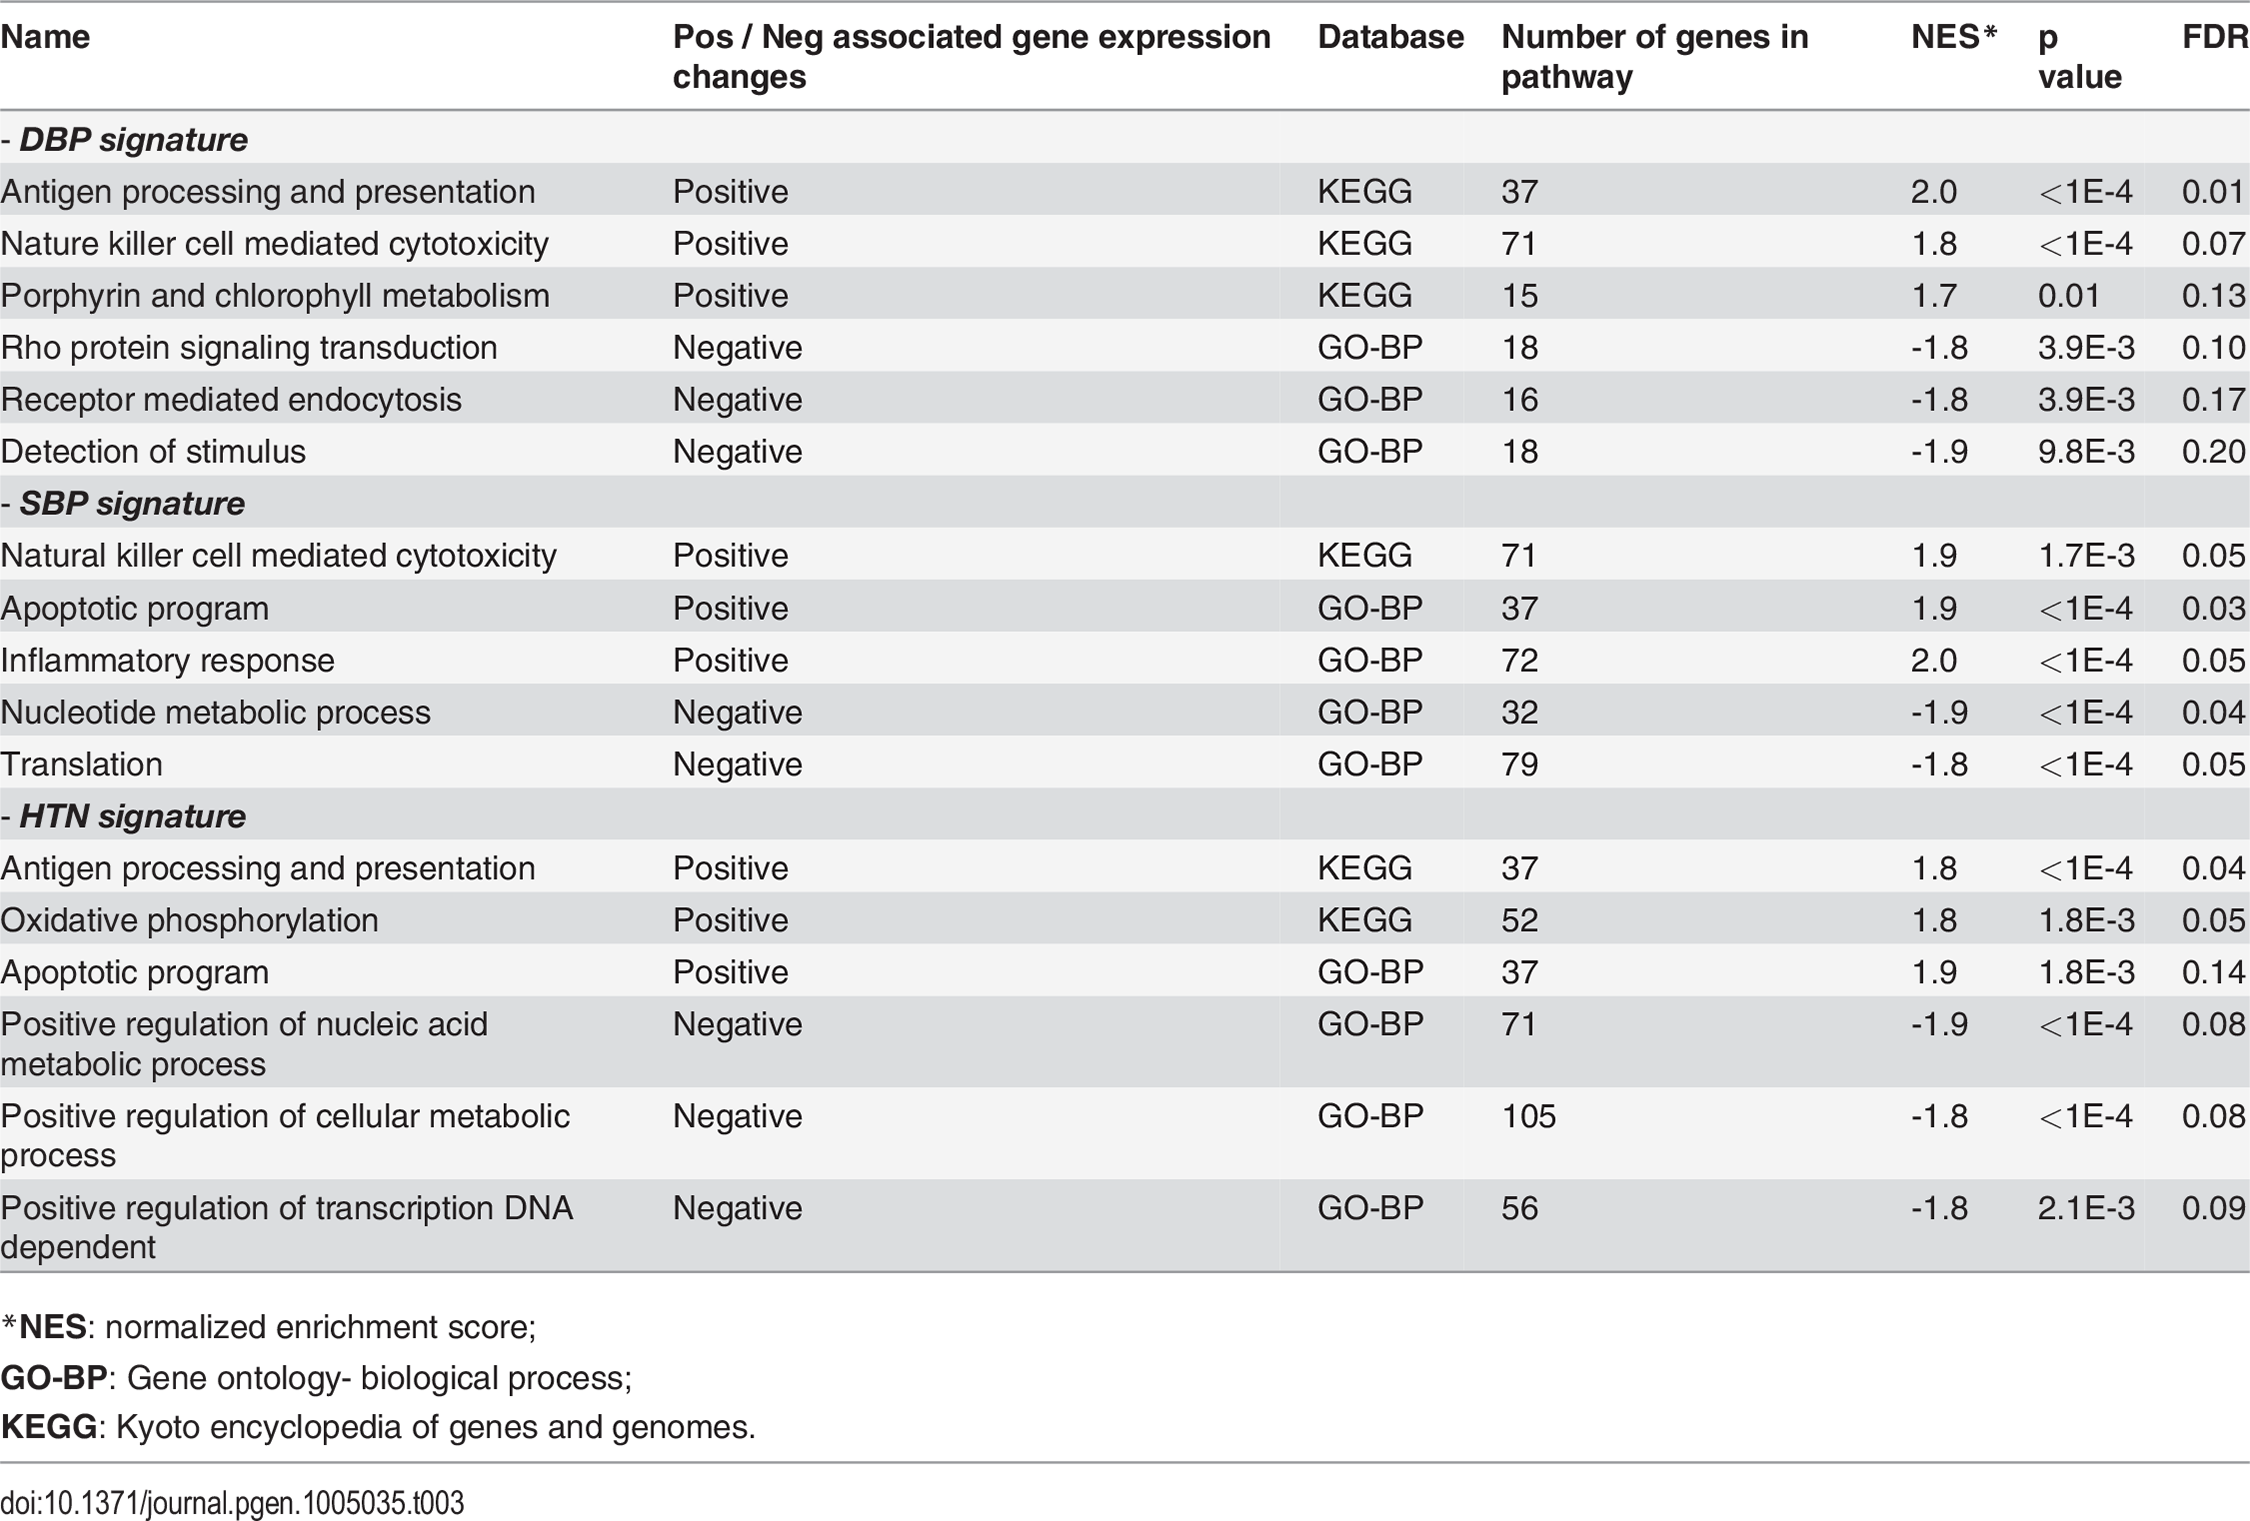 Gene set enrichment analysis for BP associated gene expression changes.